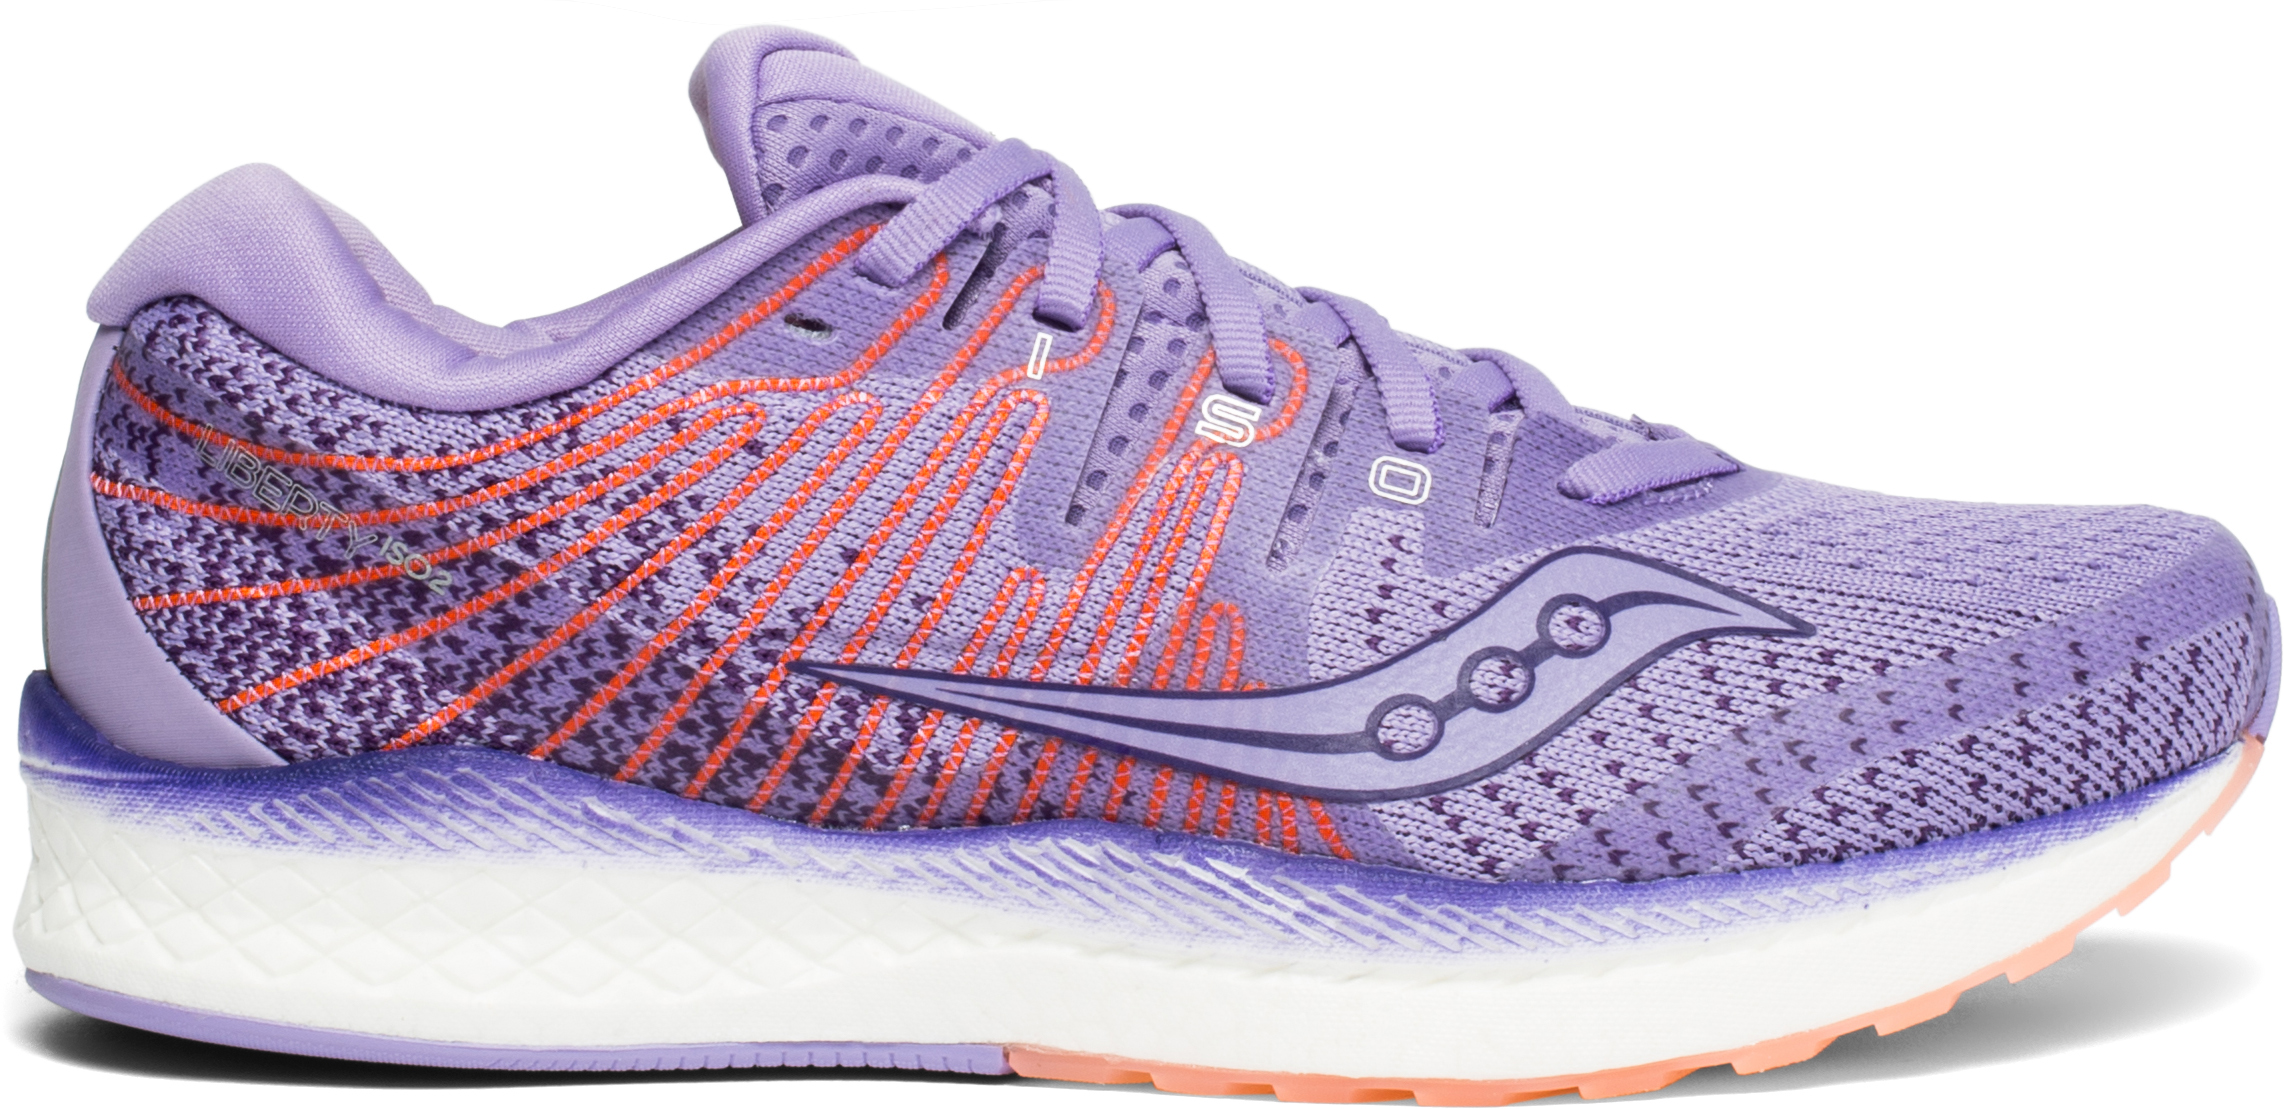 c76bf0be59 Saucony Liberty ISO 2 Road Running Shoes - Women's | MEC